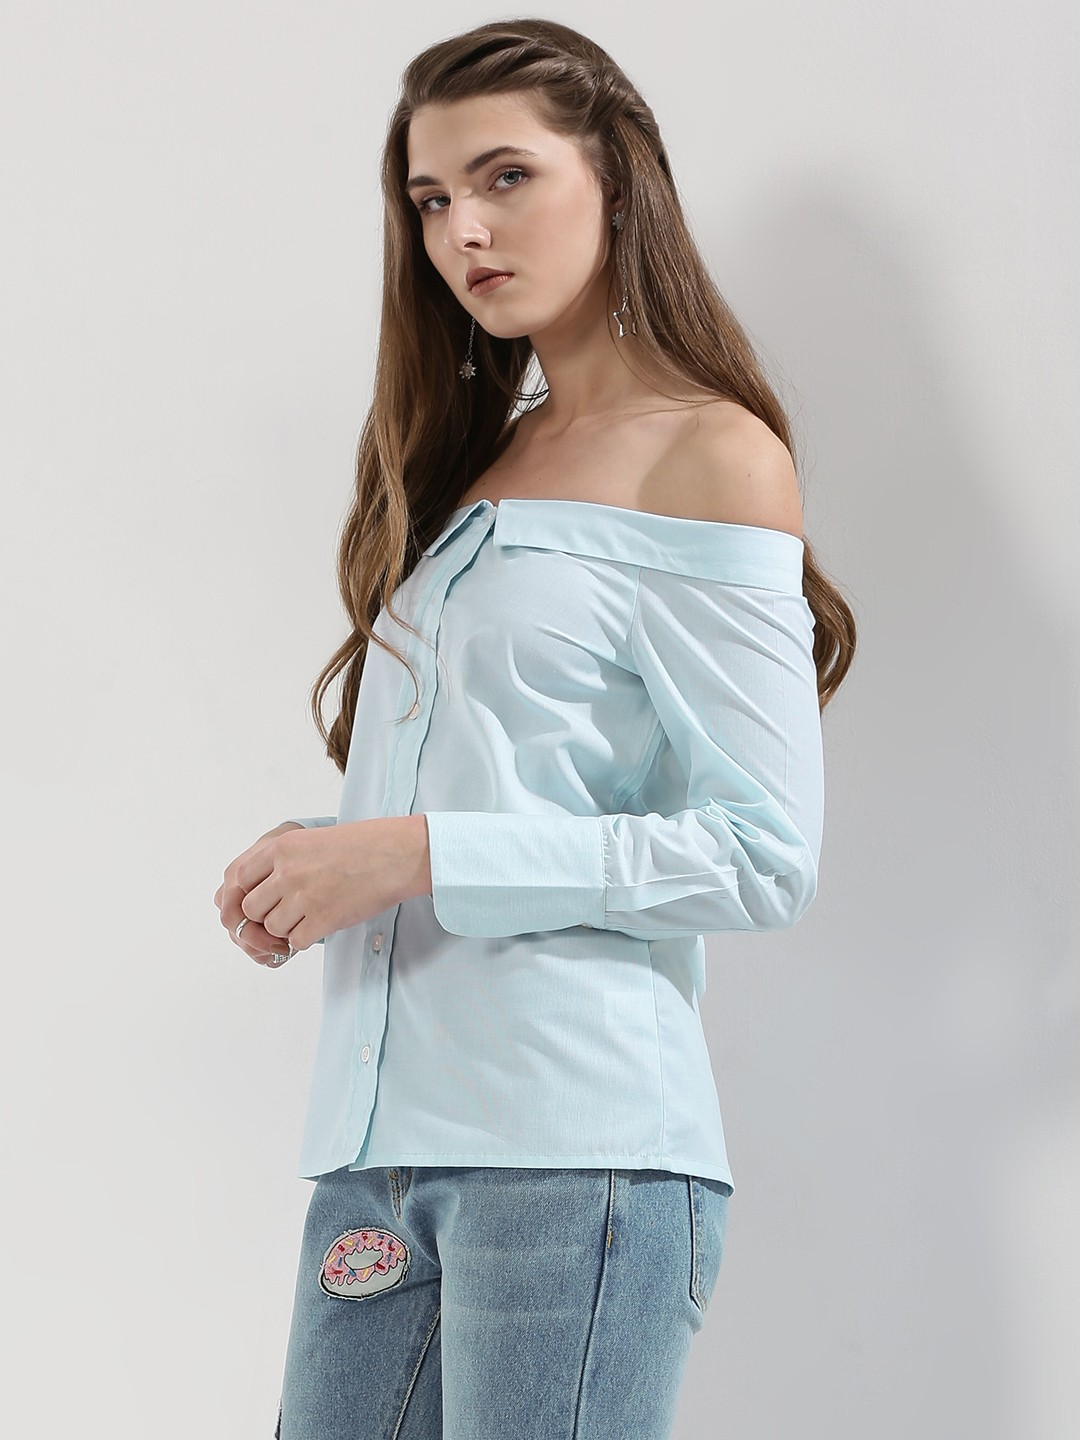 Buy POSTFOLD Off Shoulder Collared Shirt For Women - Women's Ice ...